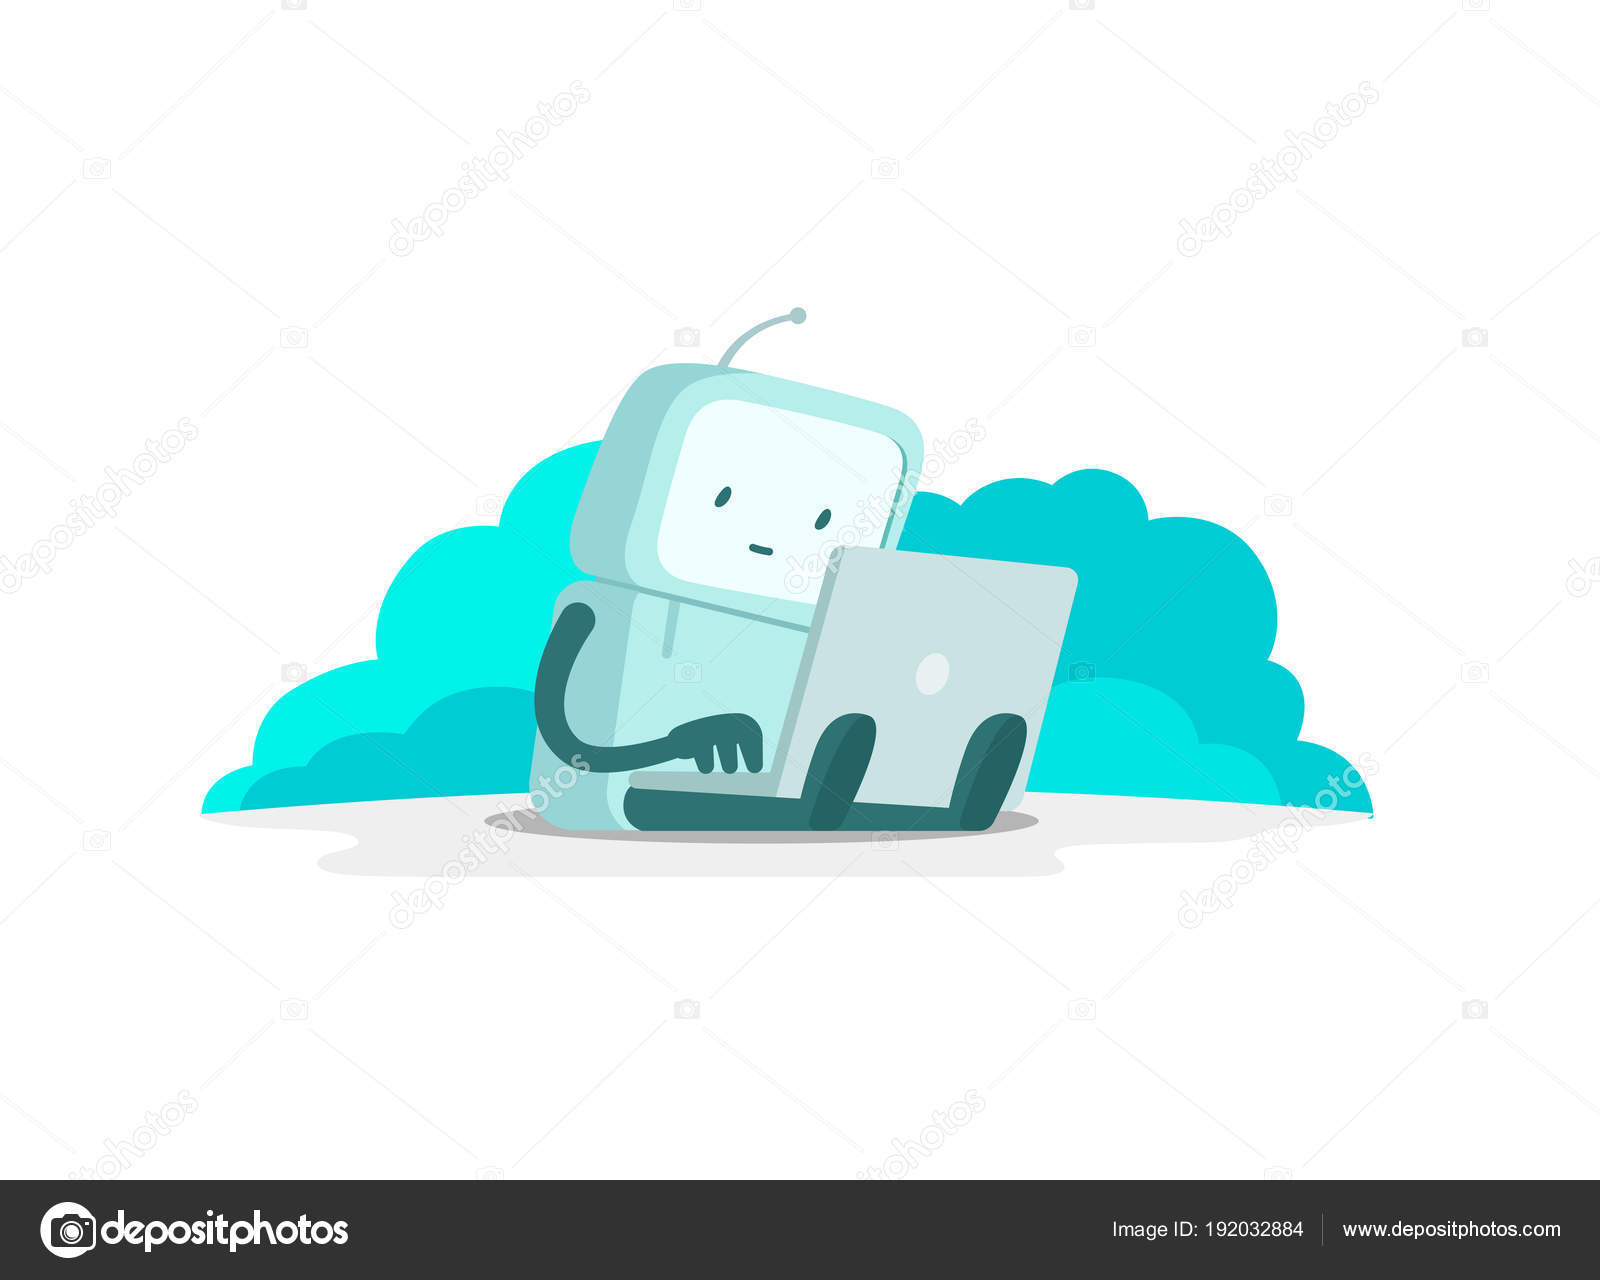 Browsing Stock Illustrations – 18,666 Browsing Stock Illustrations, Vectors  & Clipart - Dreamstime